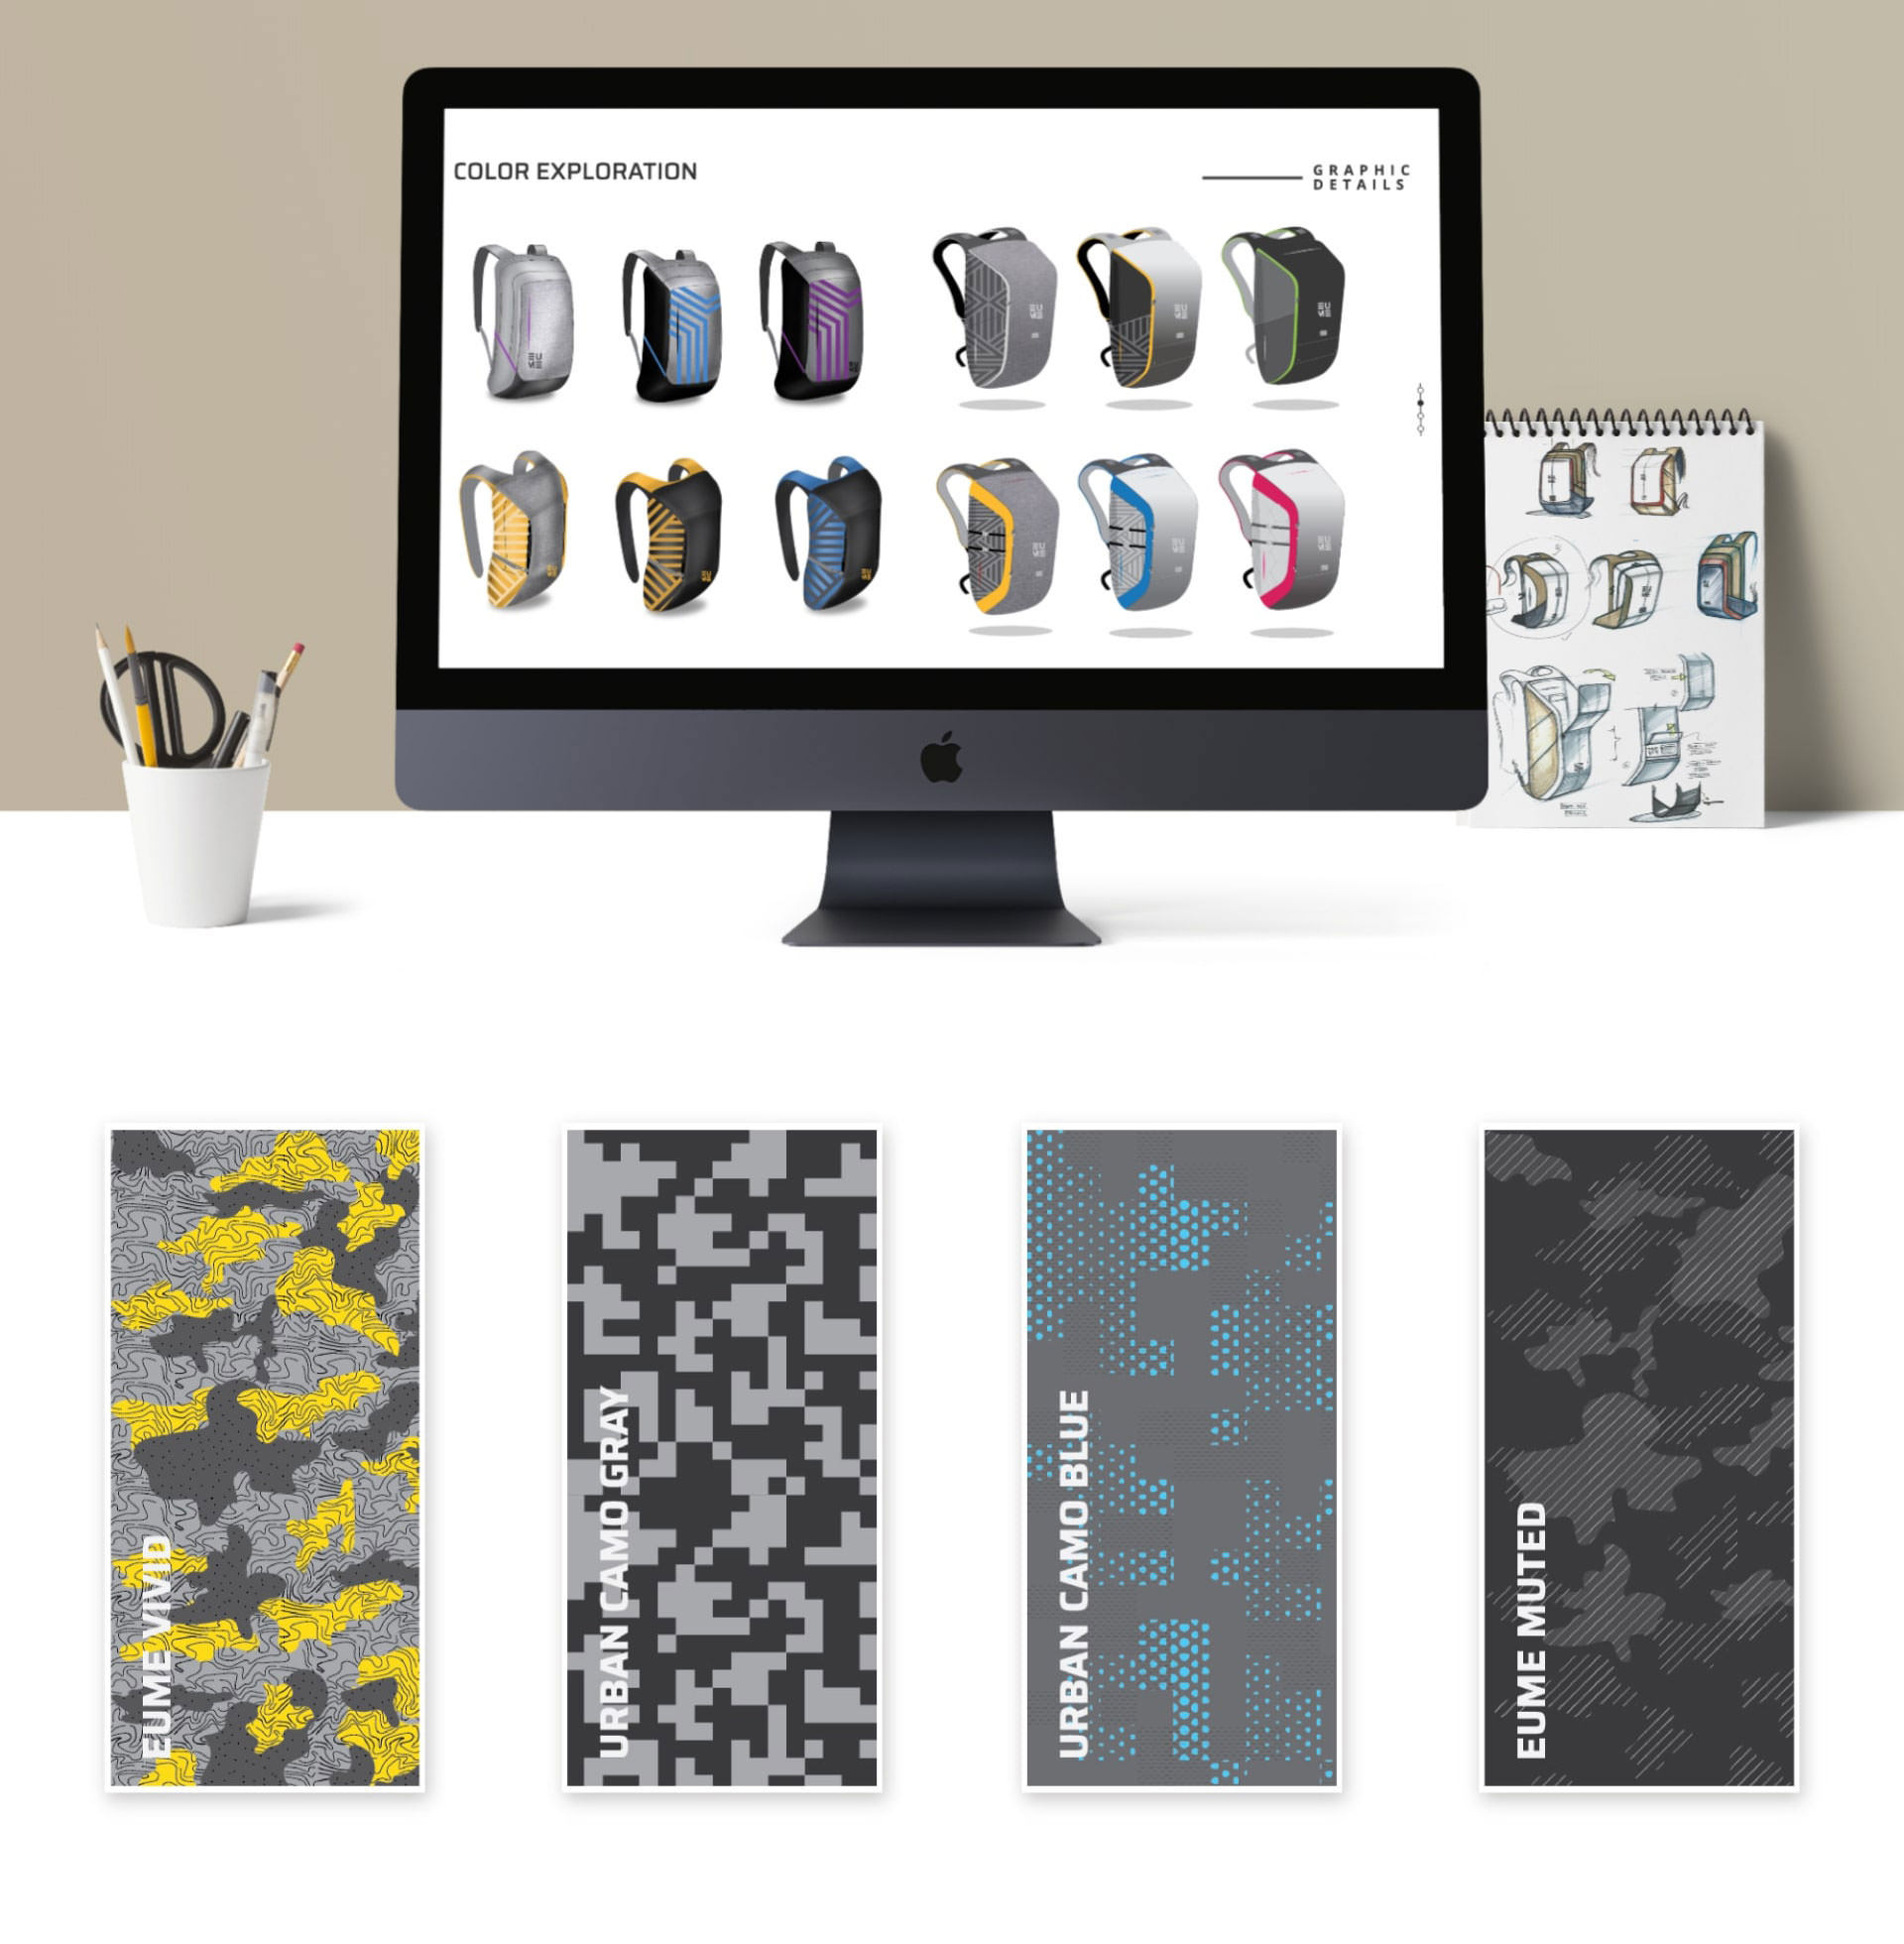 EUME-product-design-colors-patterns-Analogy-Design-Blog